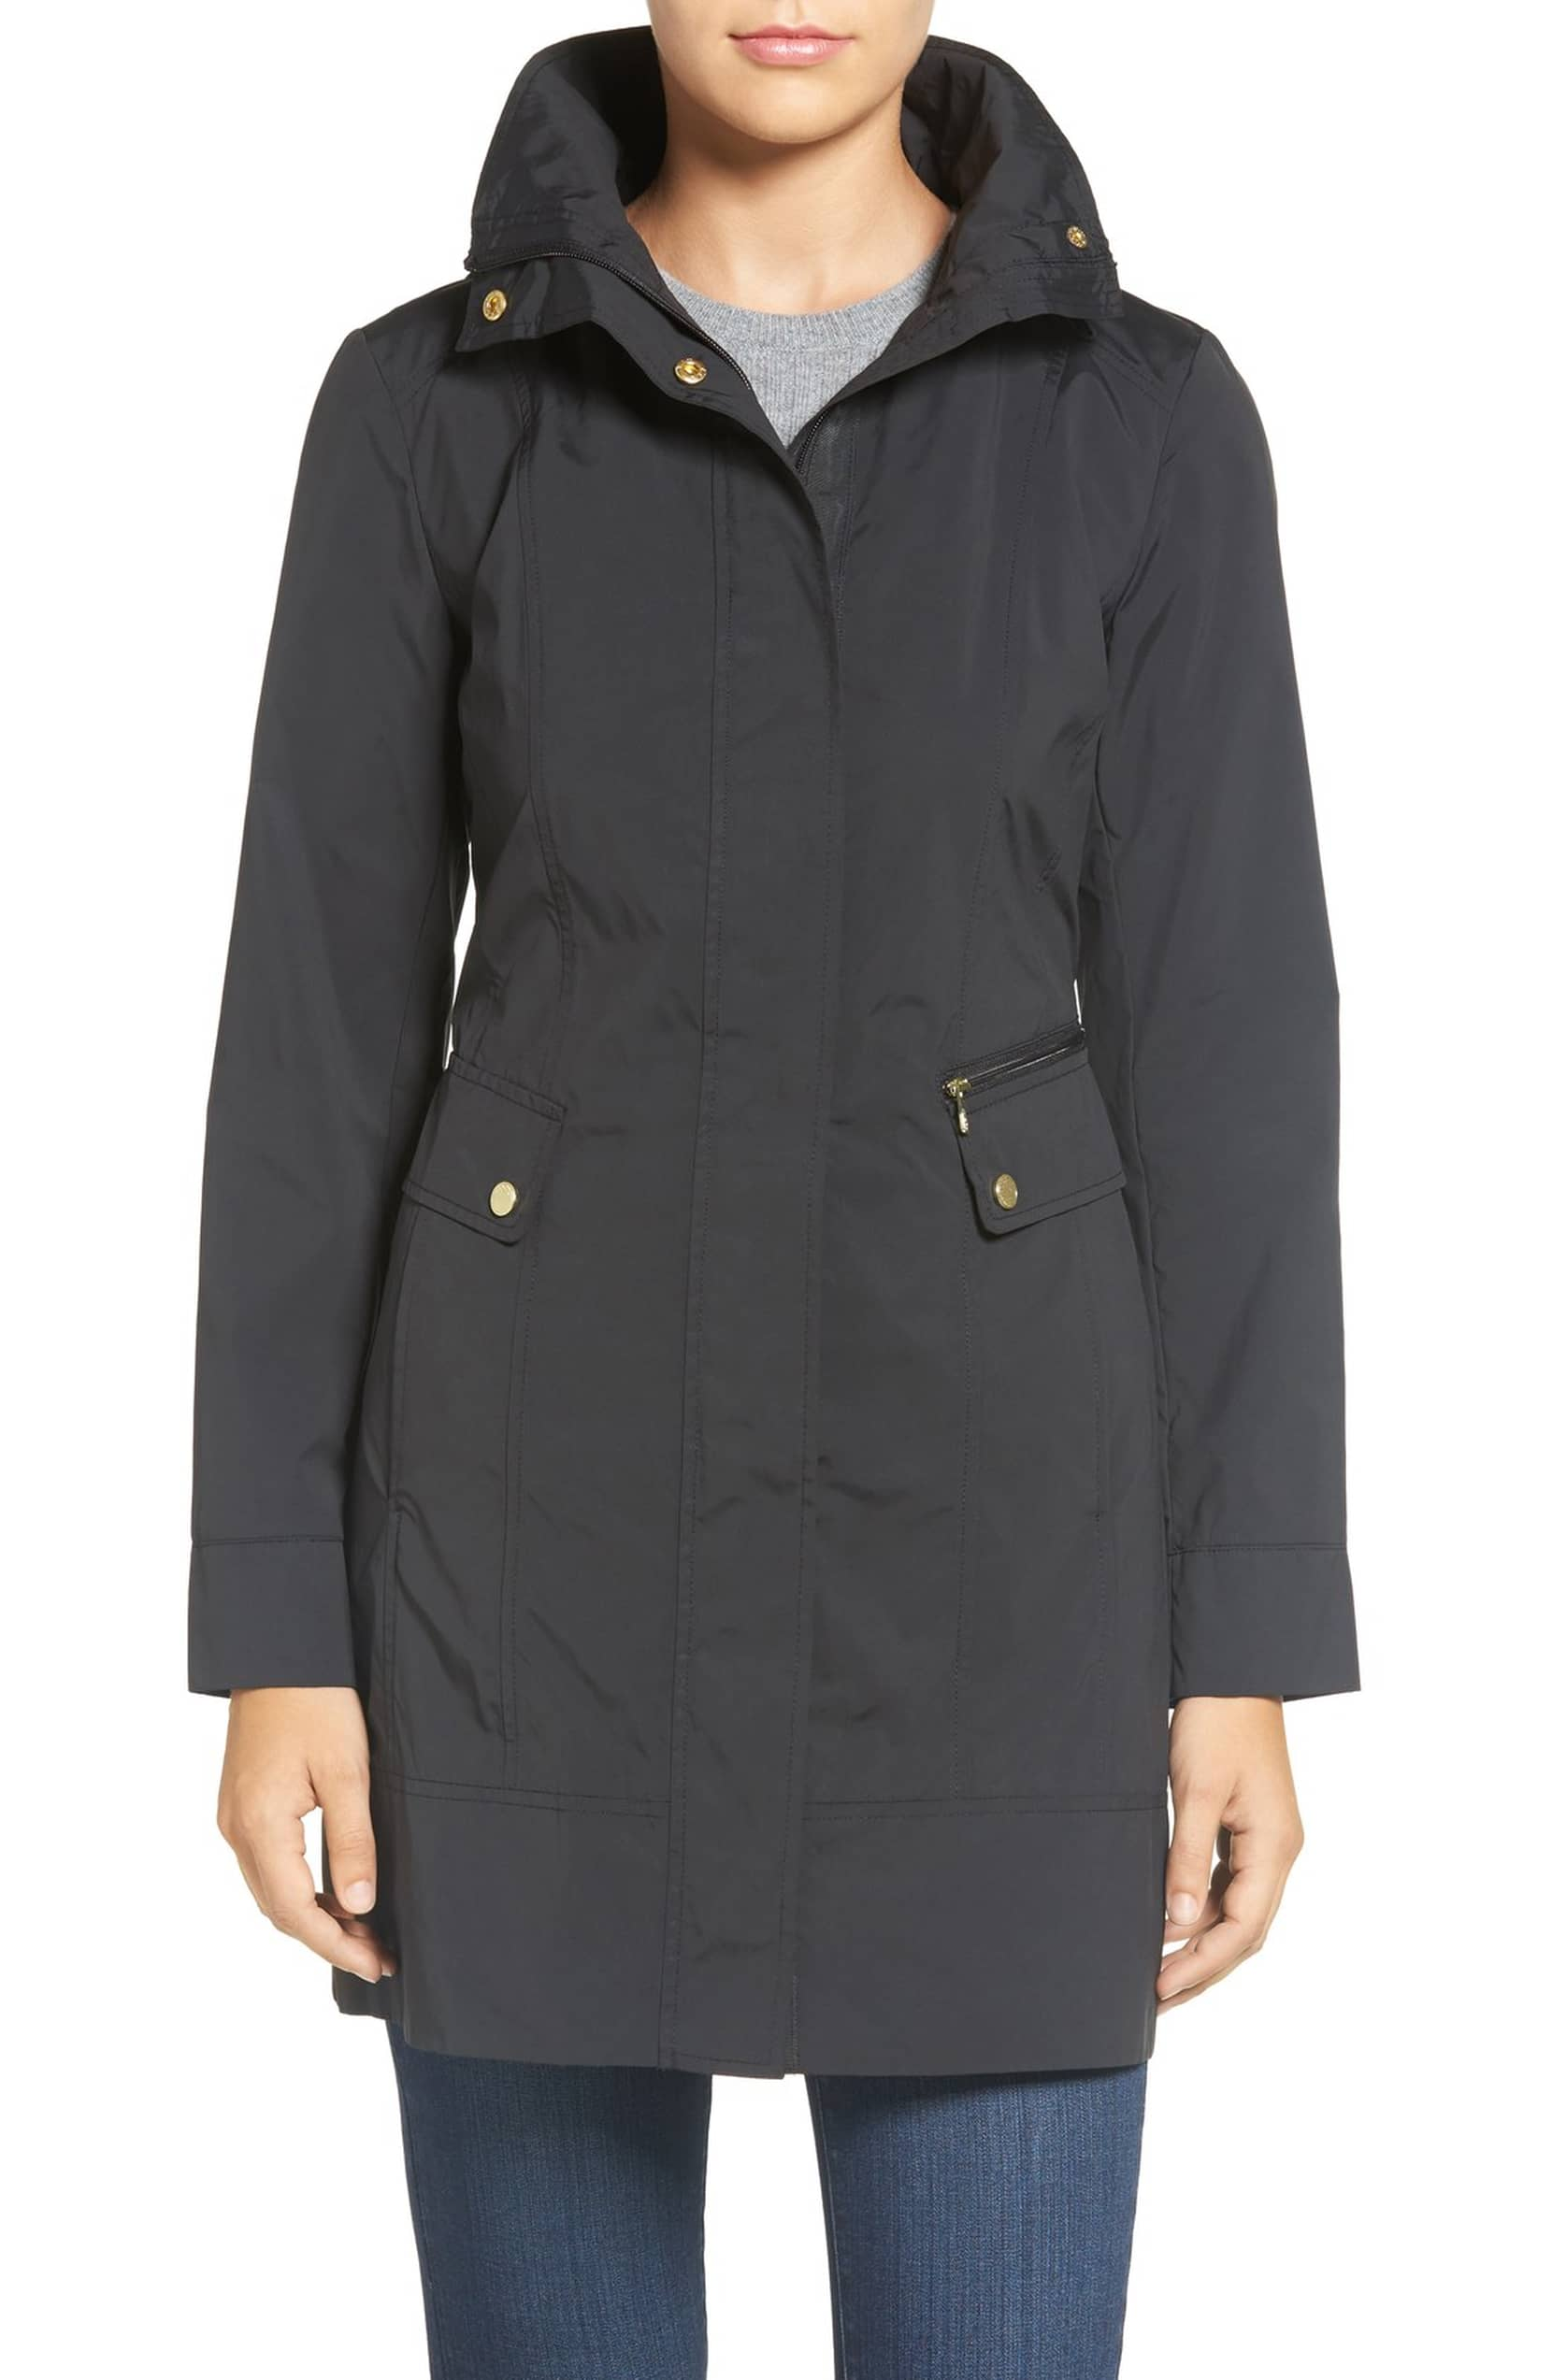 Stay Dry With This Packable Raincoat on Sale at Nordstrom d4cd0c2d3